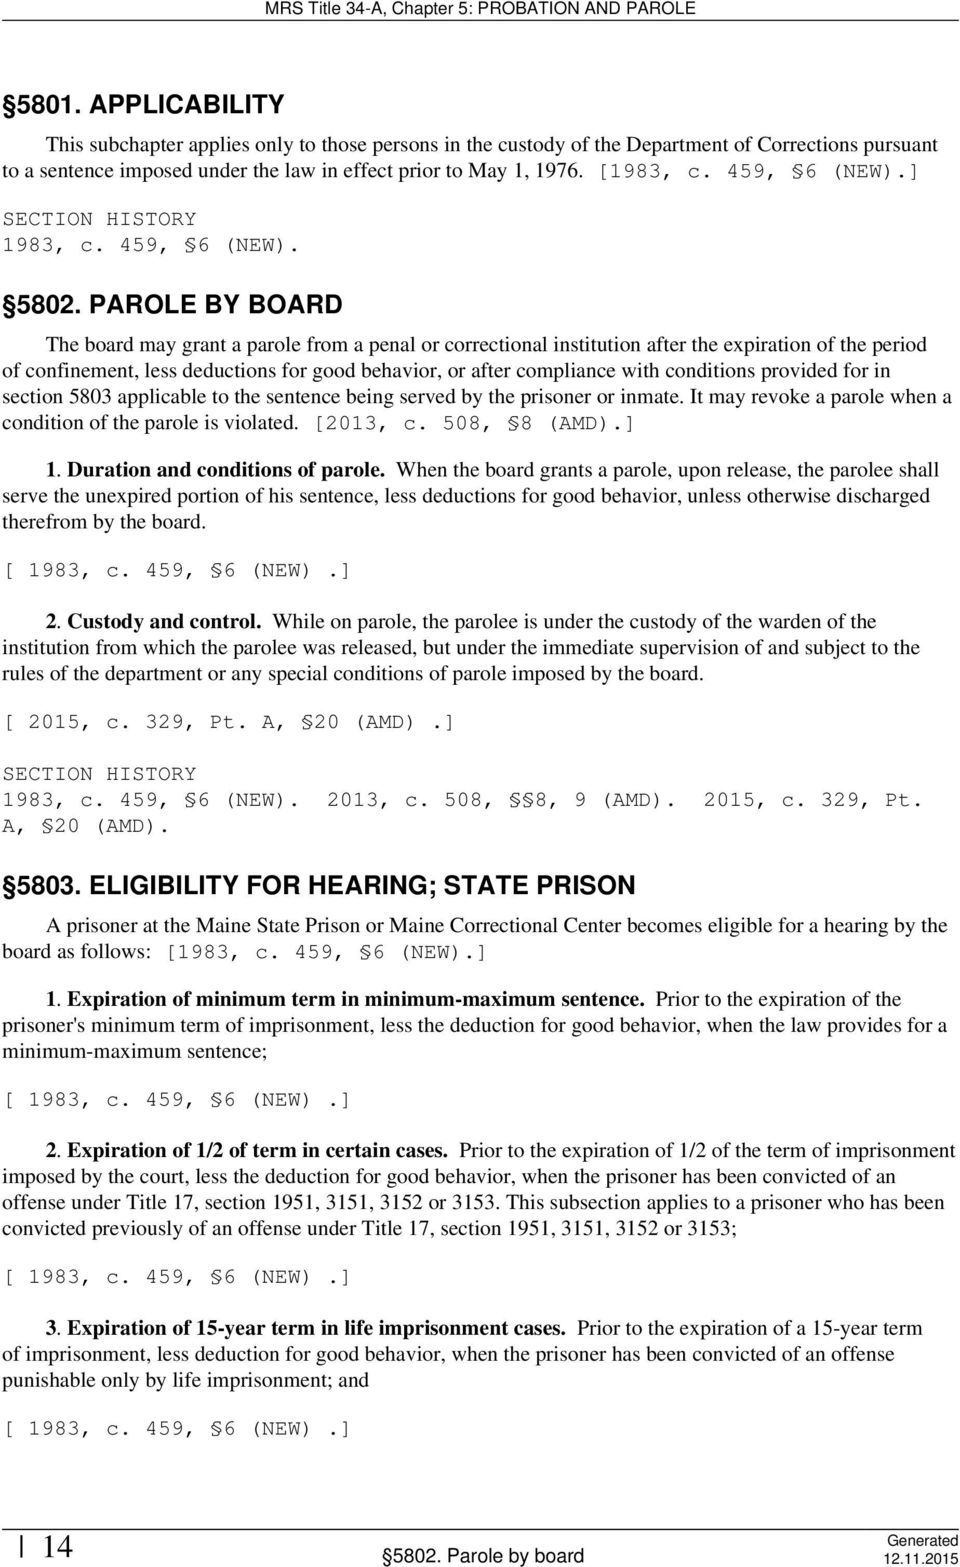 conditions provided for in section 5803 applicable to the sentence being served by the prisoner or inmate. It may revoke a parole when a condition of the parole is violated. [2013, c. 508, 8 (AMD).